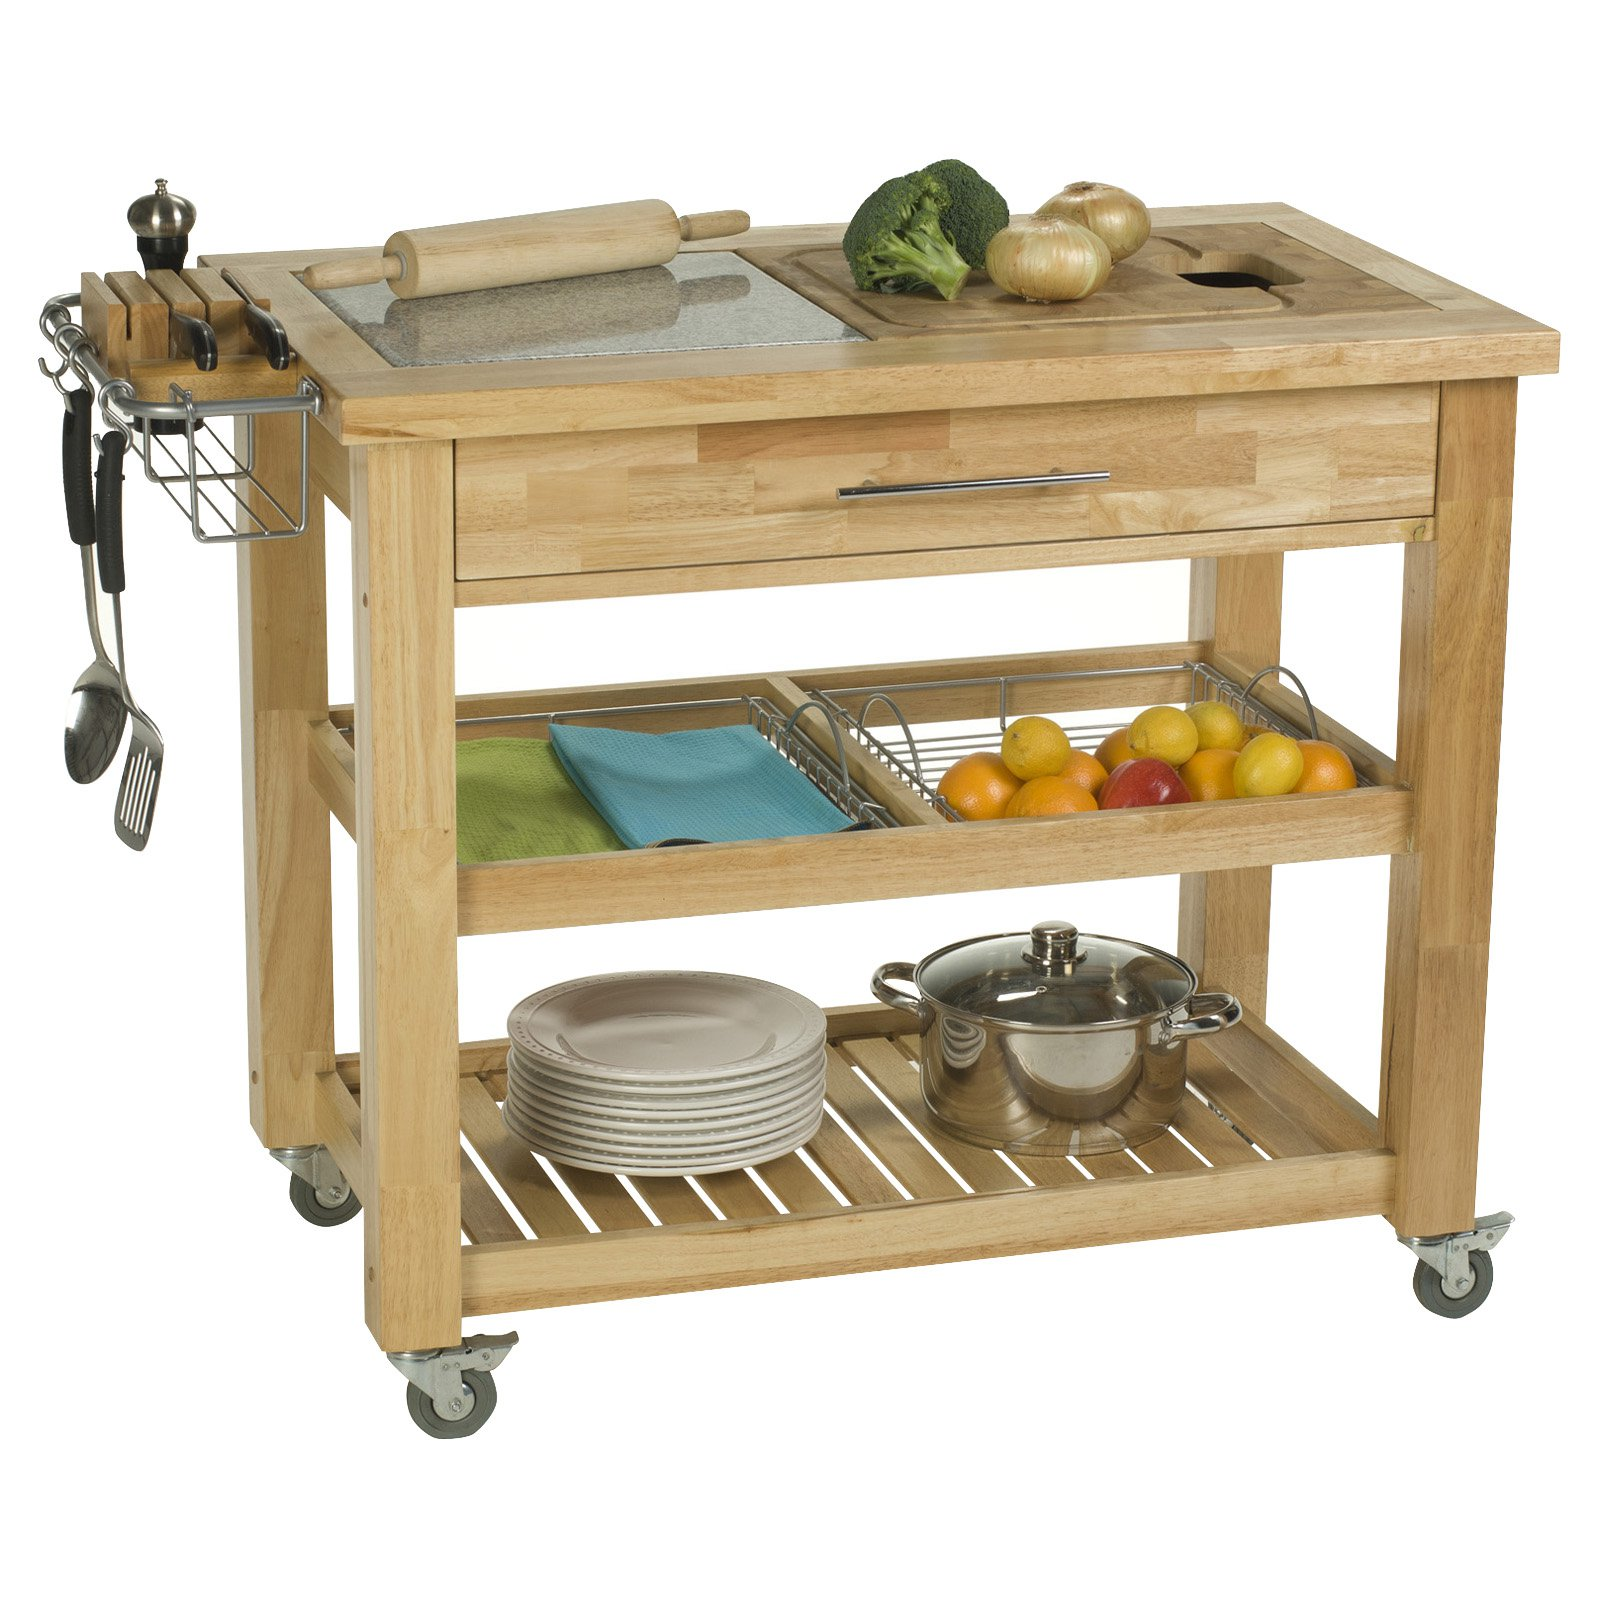 Chris & Chris Pro Chef 24 x 40 Food Prep Station - Natural ... on kitchen shelving units, kitchen cabinet, kitchen furniture, kitchen lunch, kitchen prep, kitchen buffet, kitchen wash sink, kitchen islands, kitchen cricut, kitchen utility shelf, kitchen hutch, kitchen storage, kitchen tarp, kitchen stand, kitchen camp, kitchen table, kitchen trolley, kitchen catalogues, kitchen pantry, kitchen rack,